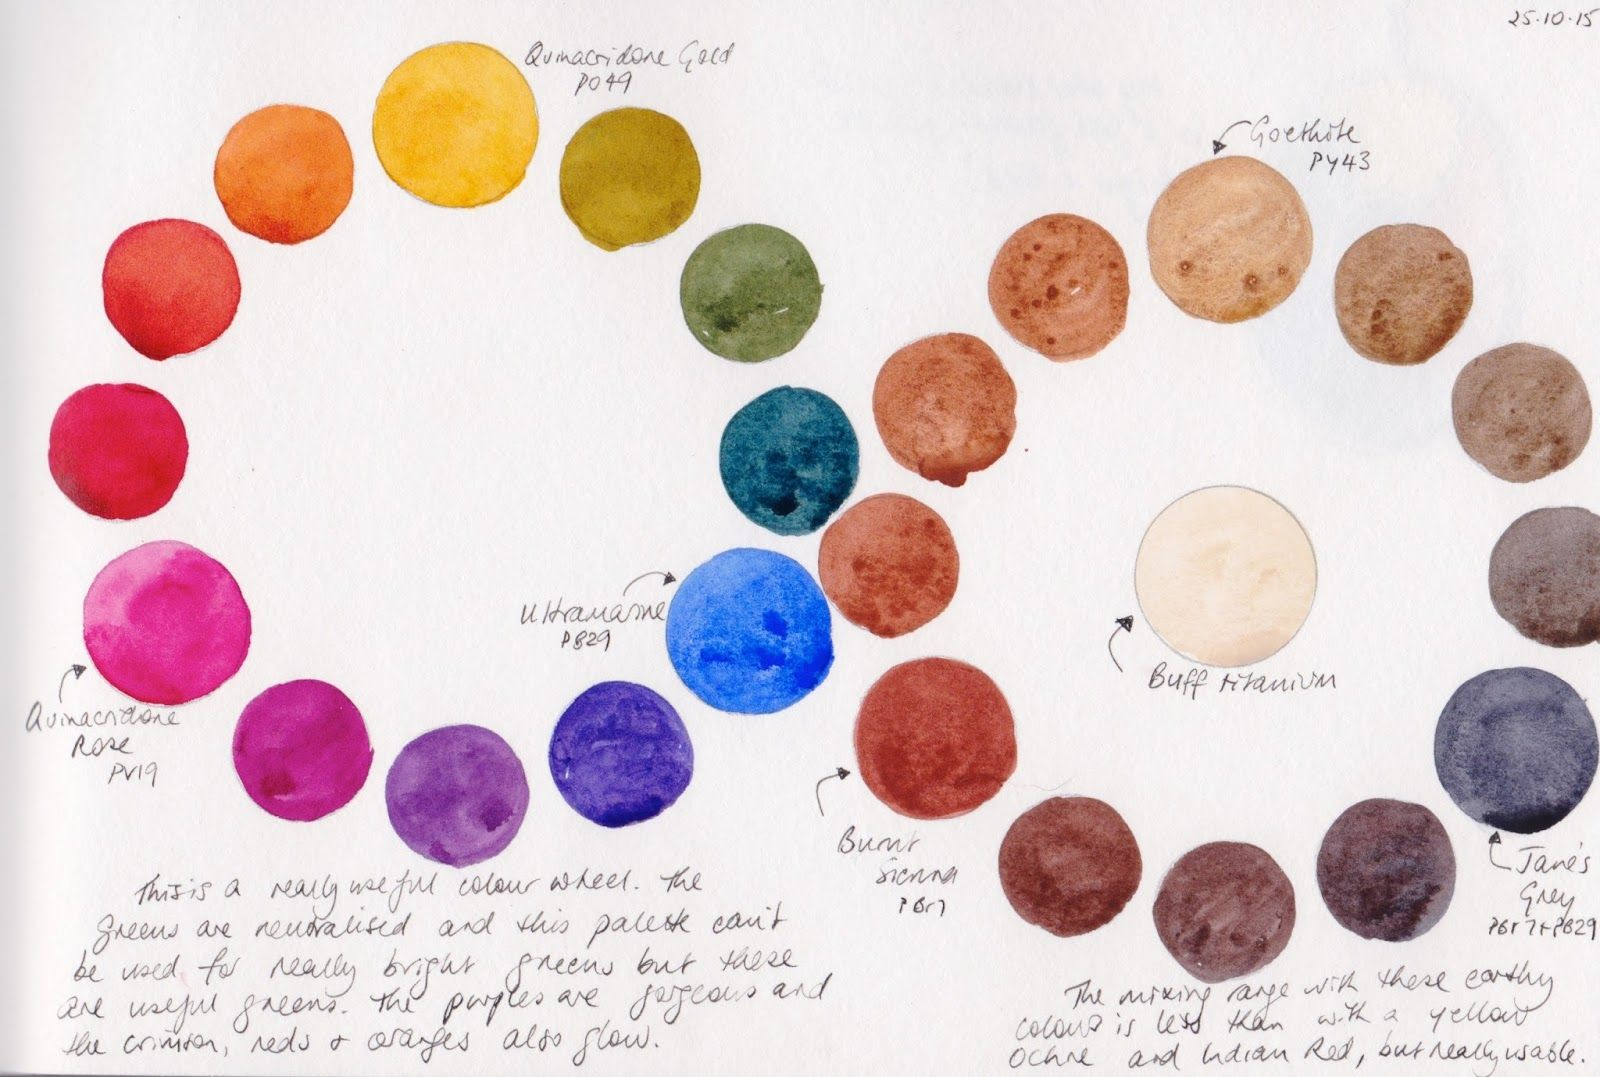 My Smallest Palette Great For Urban Sketching Print Making Designs Watercolor Palette Watercolor Lessons